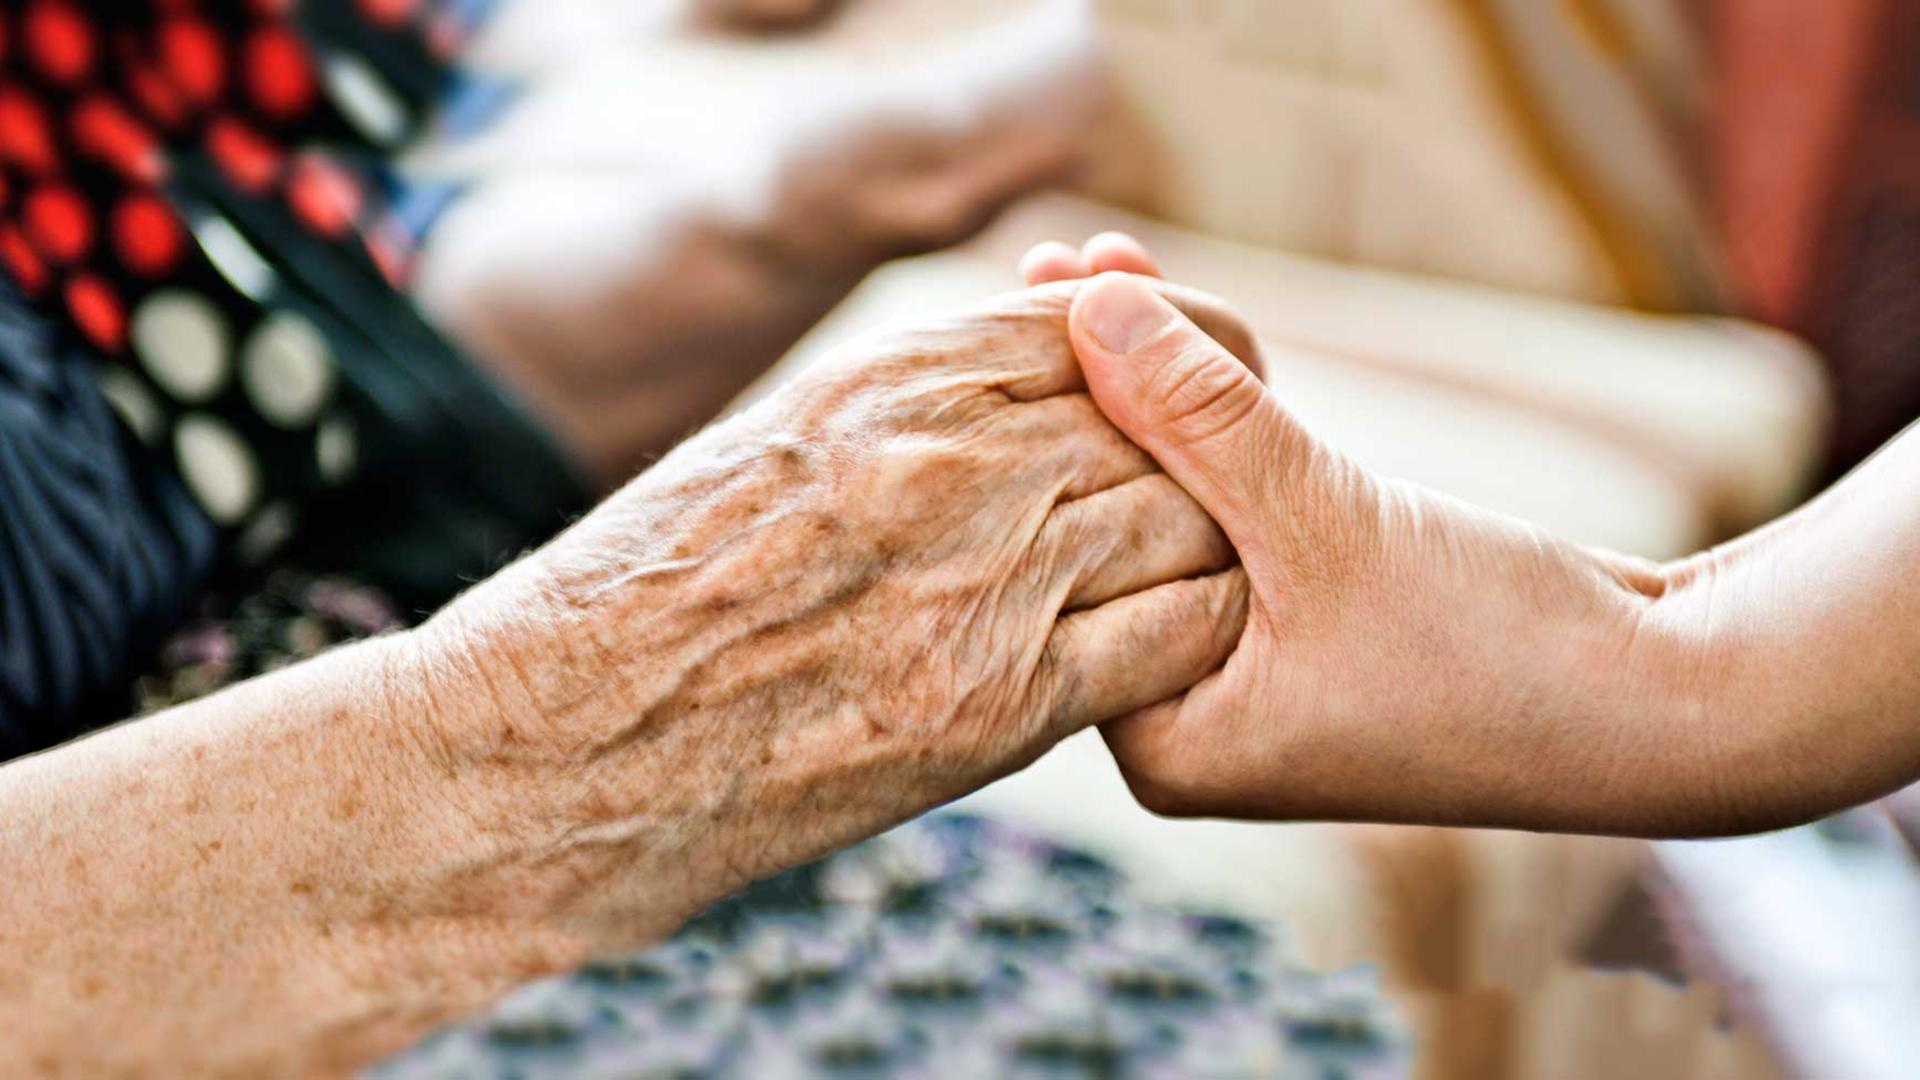 Elderly hand being held by younger hand